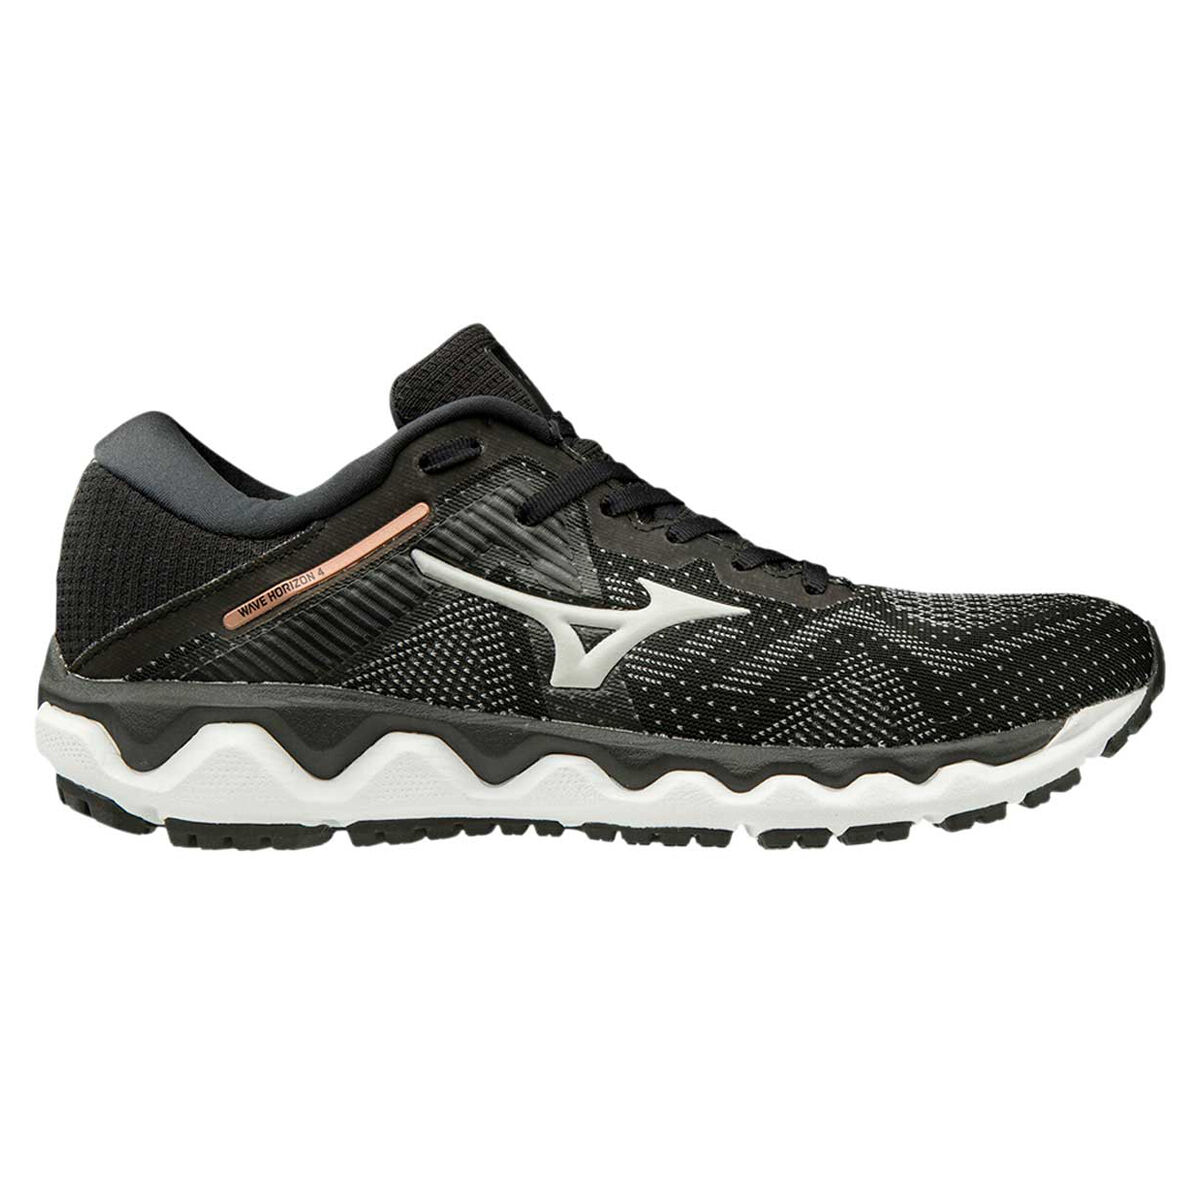 mizuno mens running shoes size 9 youth gold for zip age